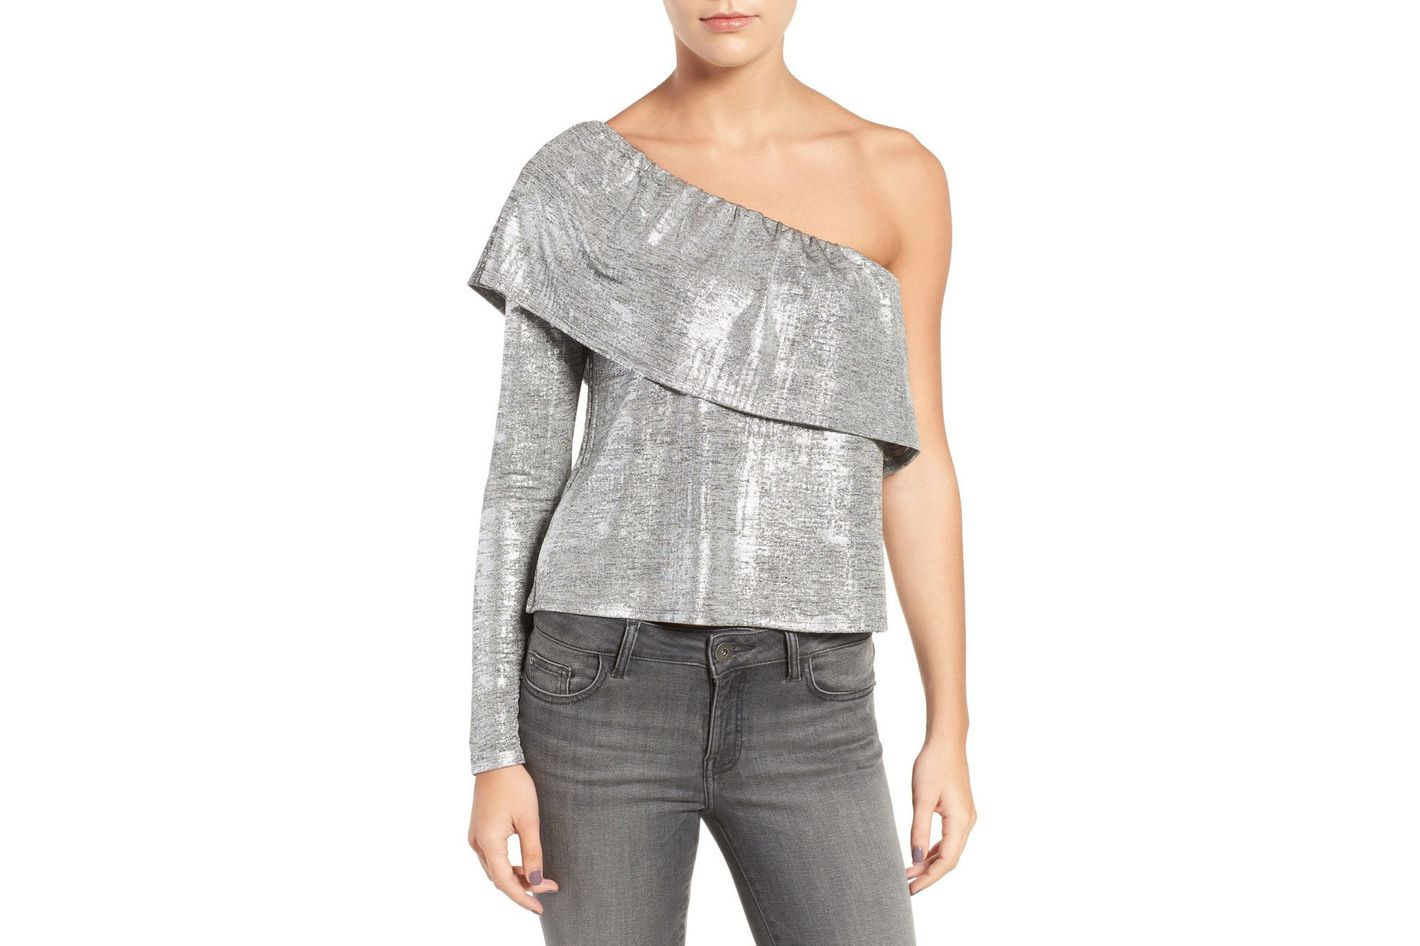 Trouvé Metallic One-Shoulder Top